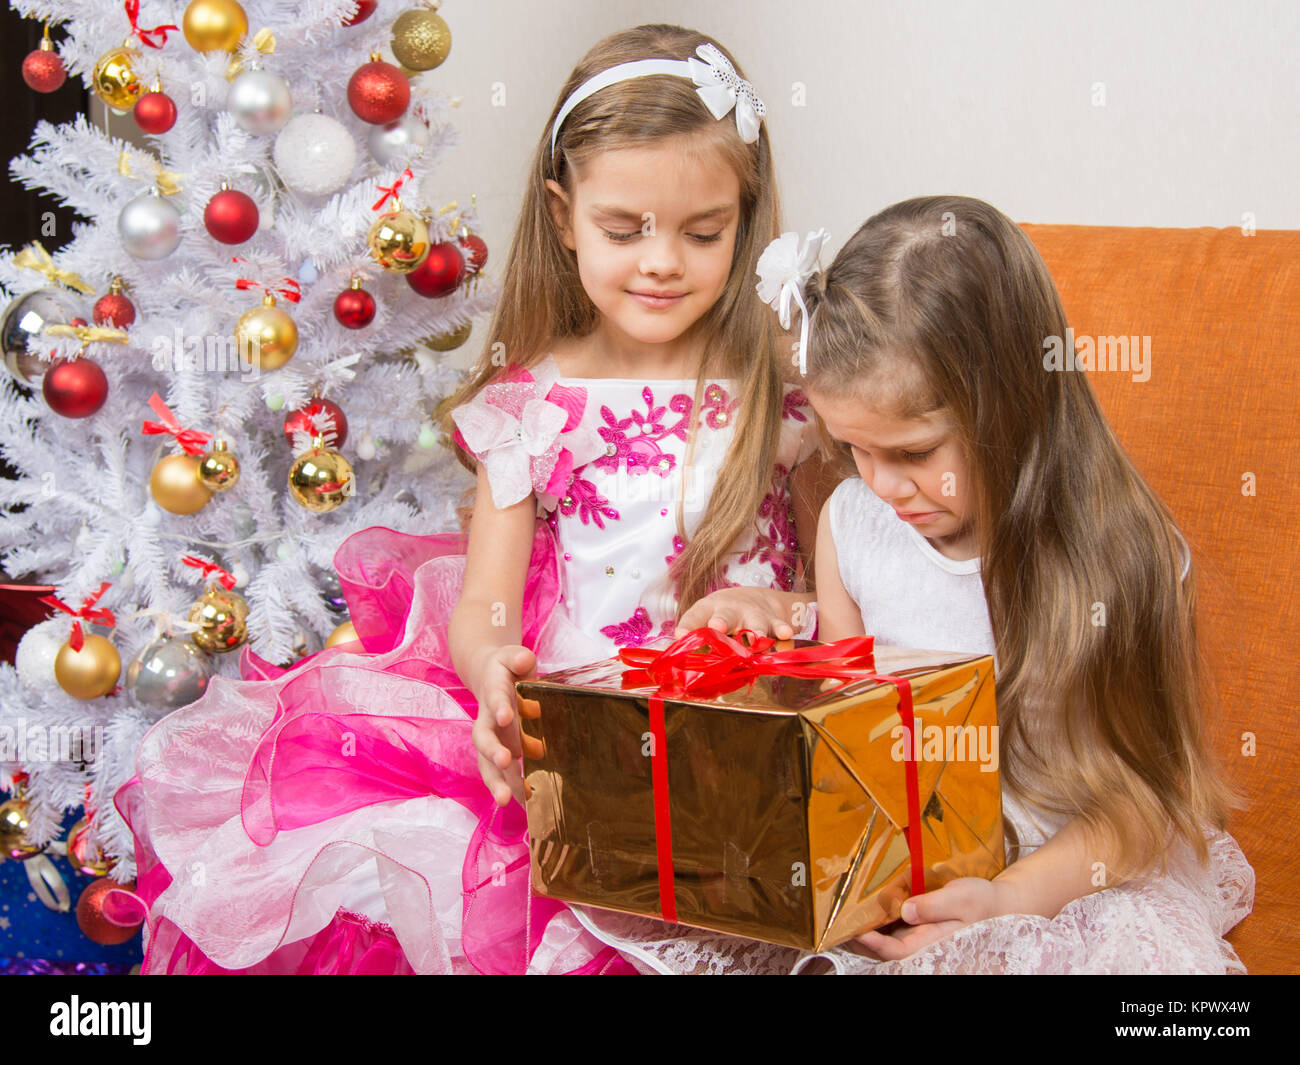 The older girl gives younger unwanted gift - Stock Image